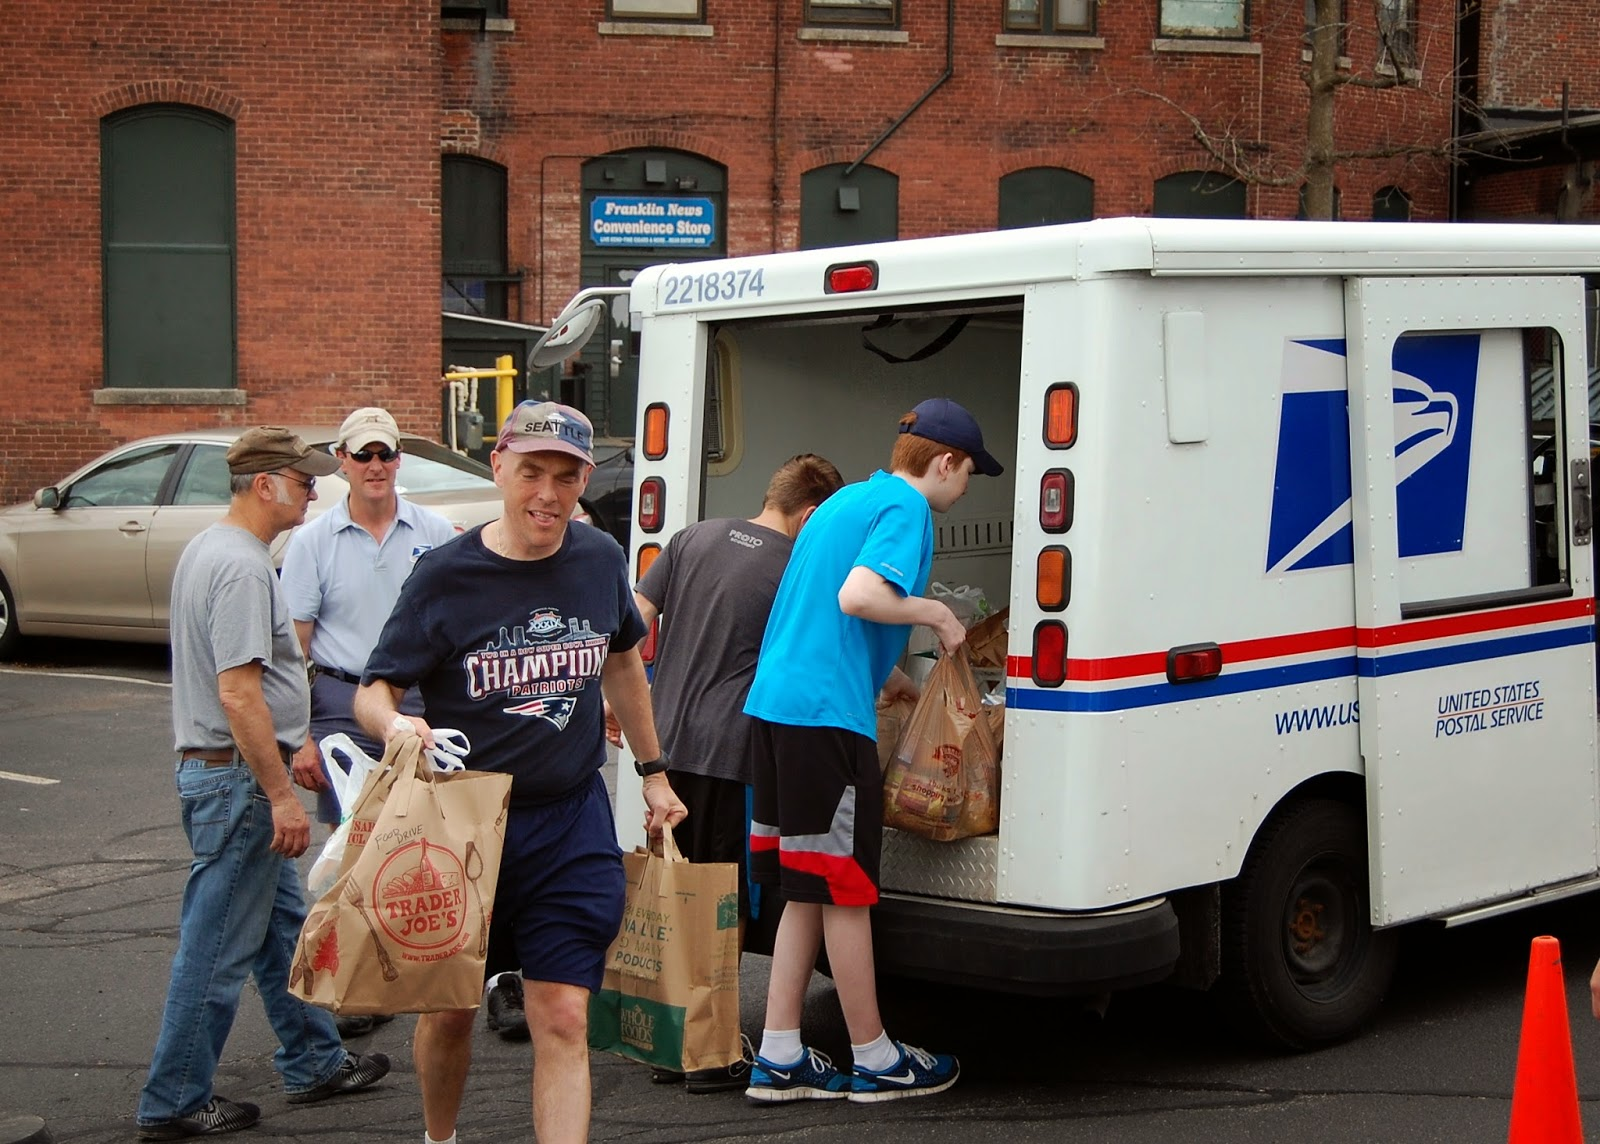 volunteers unloading the truck